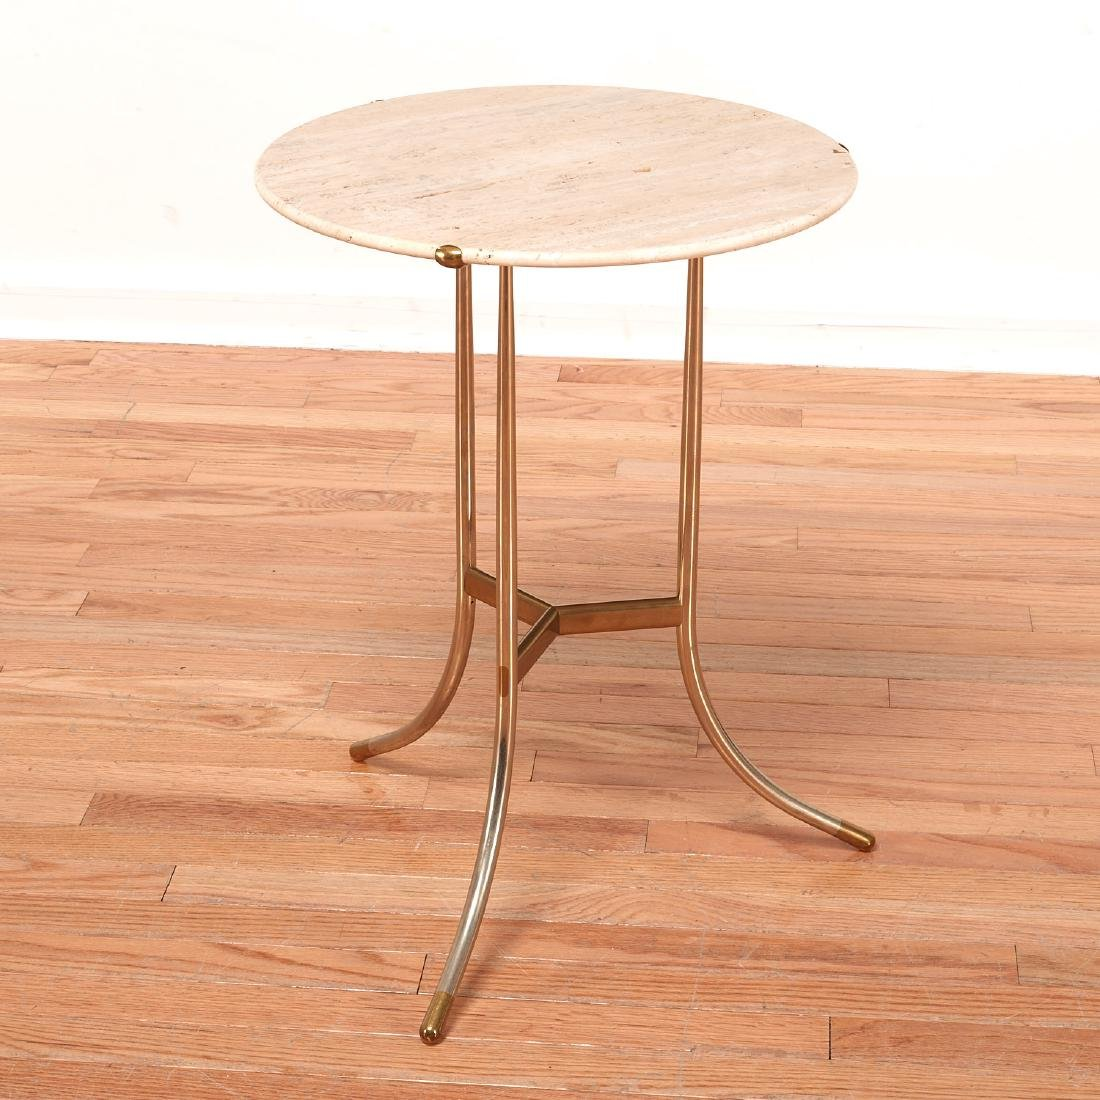 Cedric Hartman side table